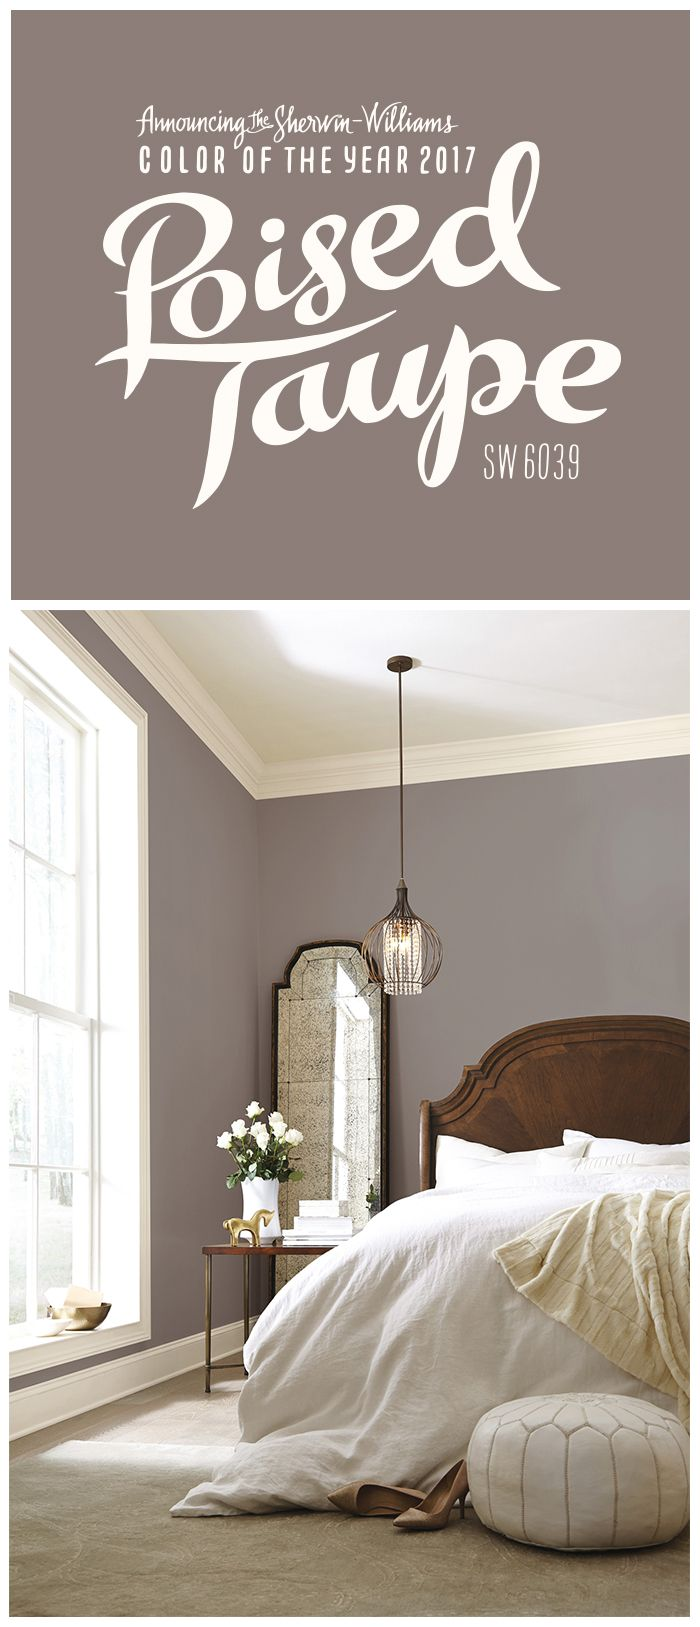 Master bedroom color design - We Re Thrilled About Our 2017 Color Of The Year Poised Taupe Sw 6039